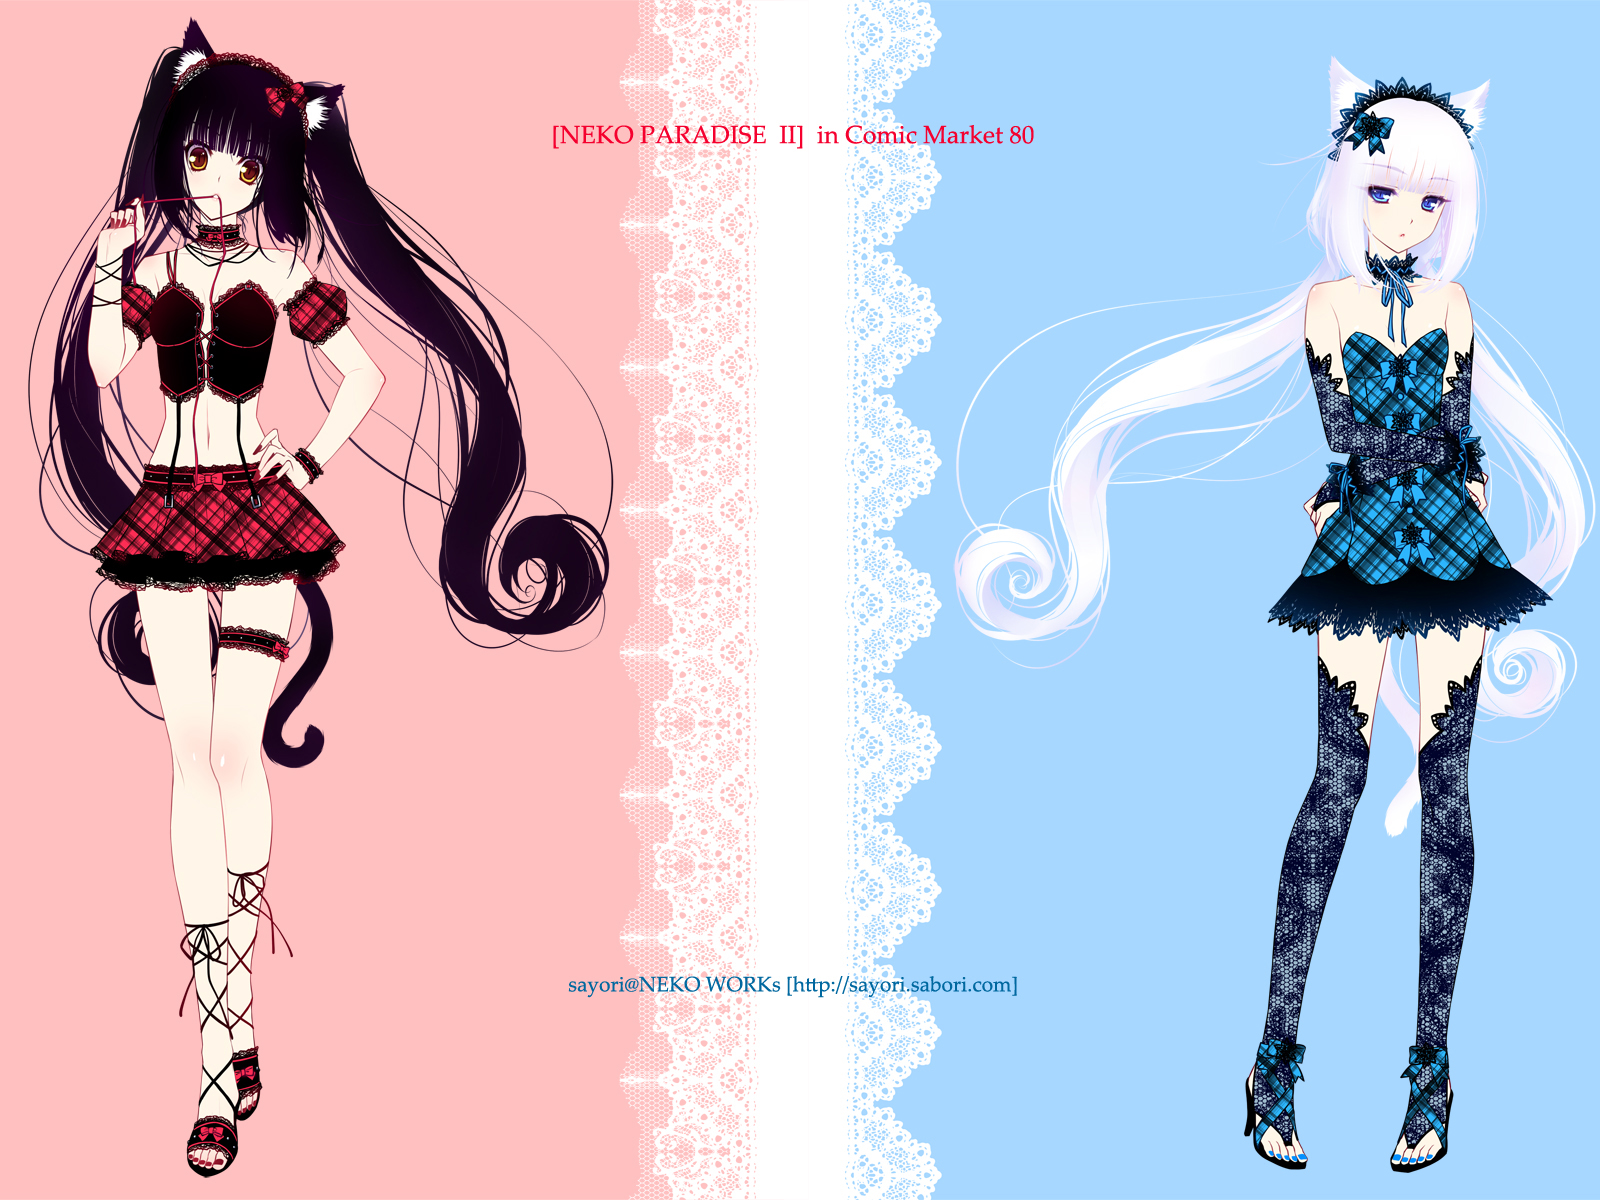 63 images about Vanilla & Chocola on We Heart It | See more about ...